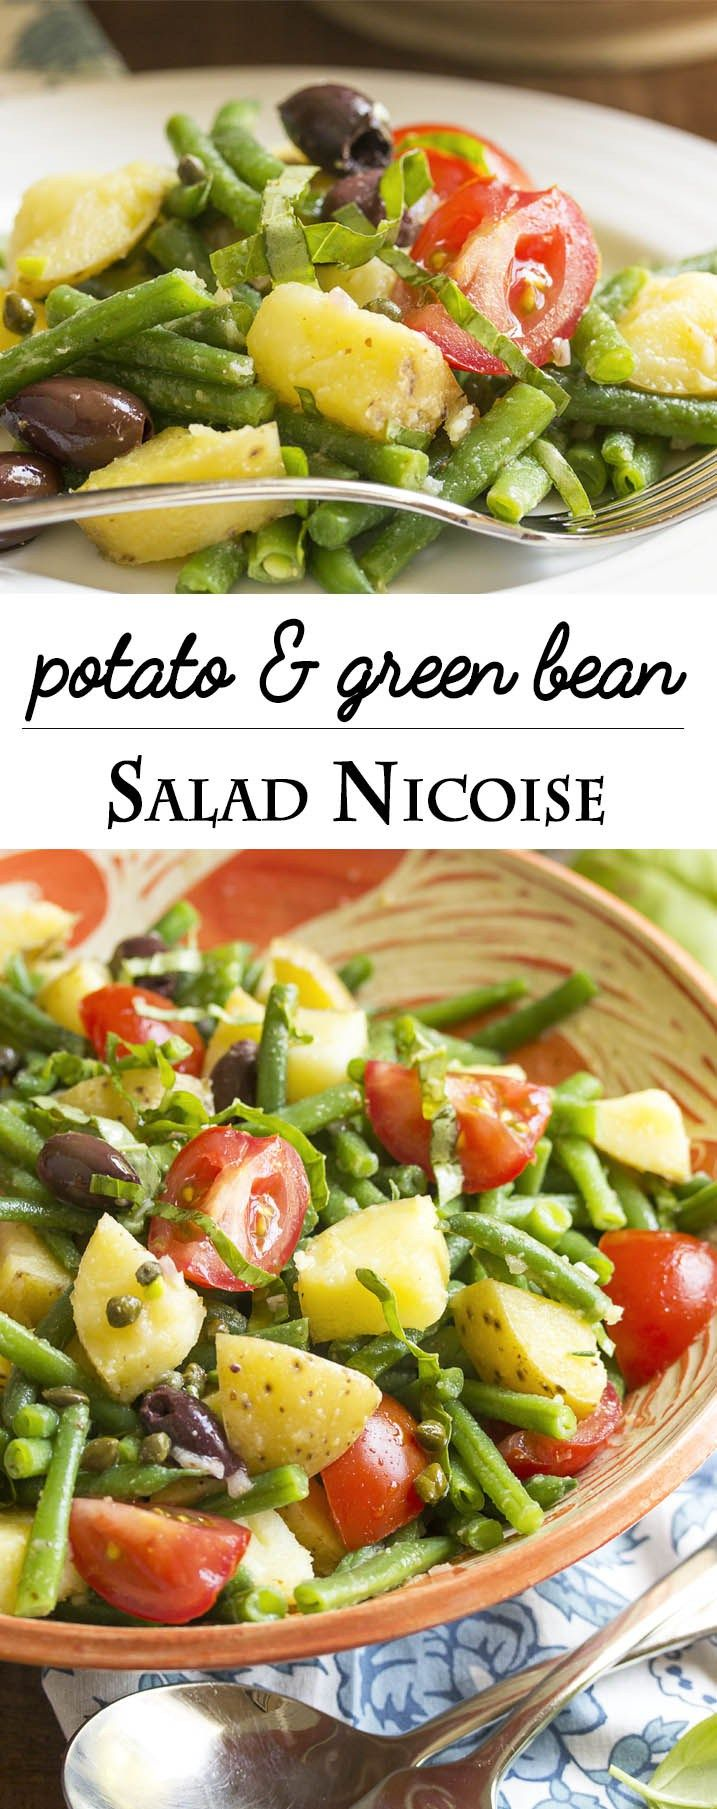 Potato Salad Nicoise